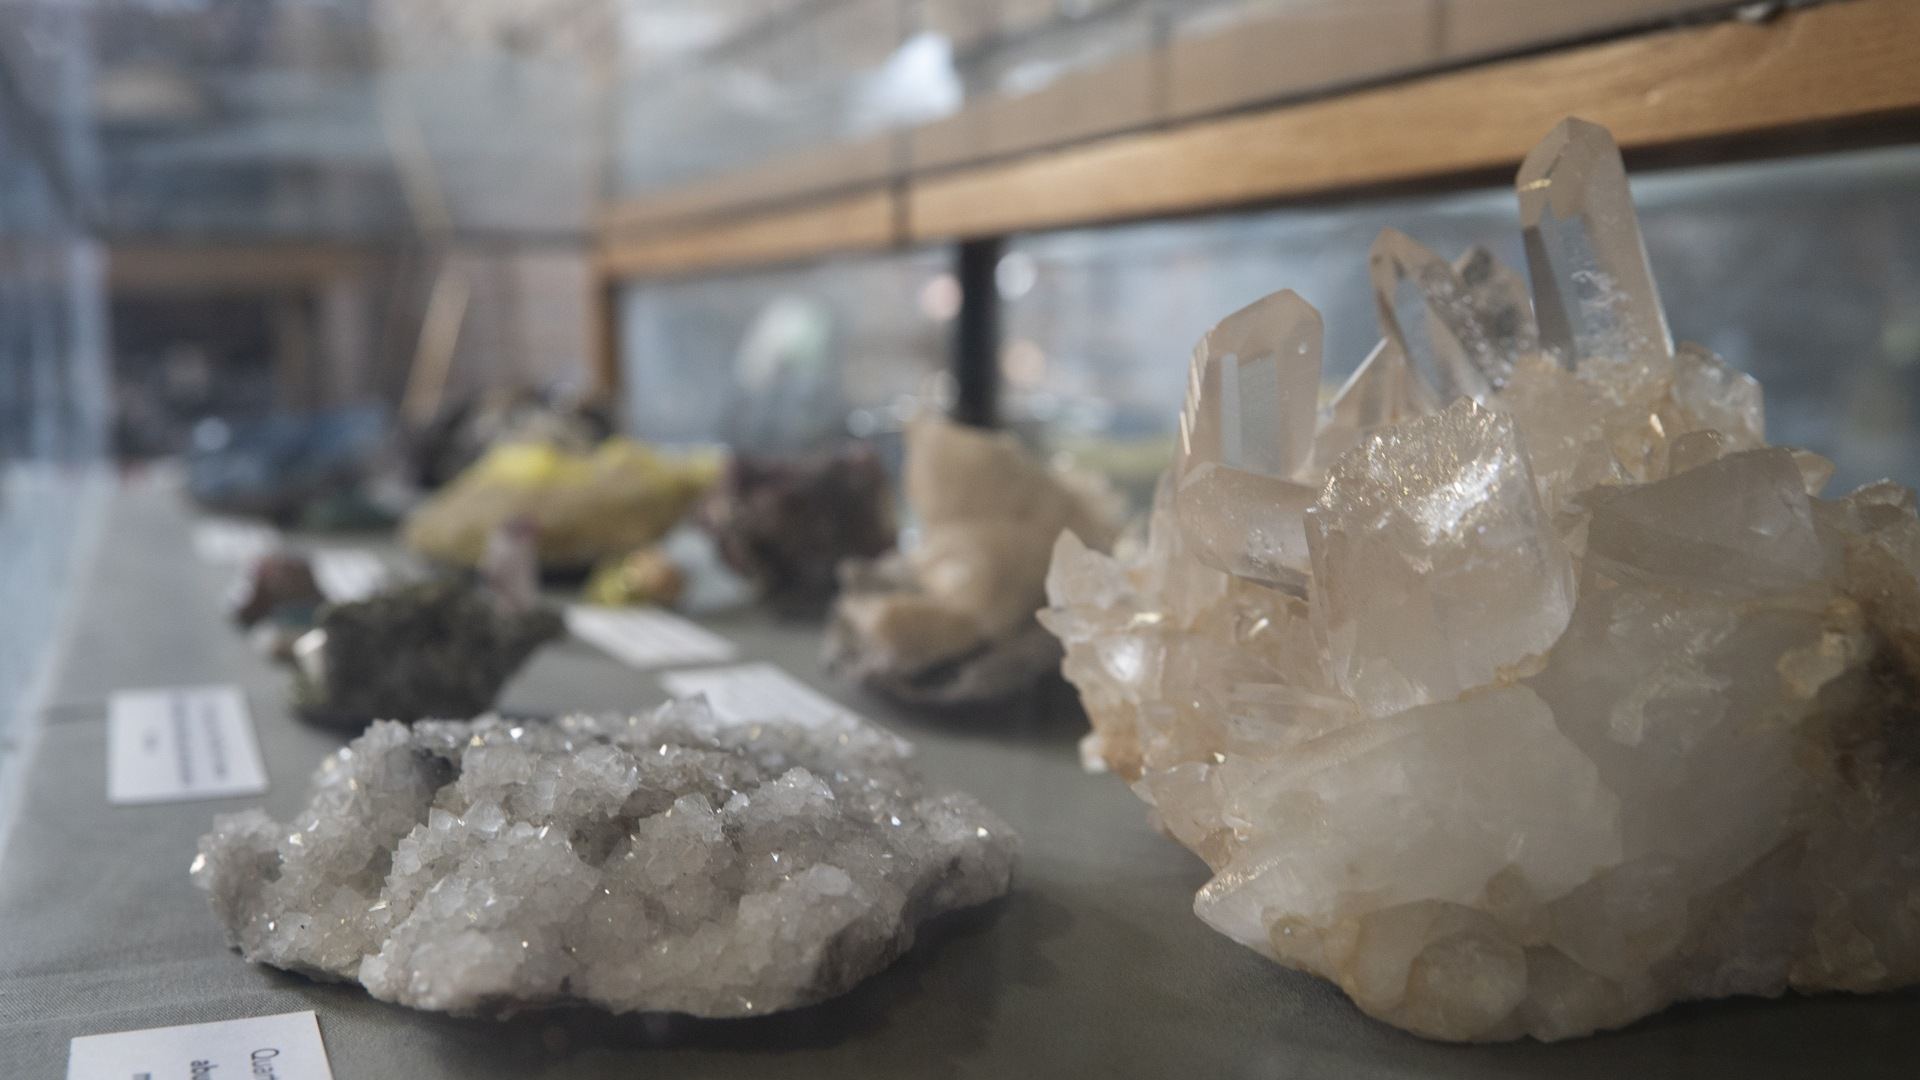 Quartz samples are among the pieces from the University of La Verne's Cultural & Natural History Collections on display as part of an exhibit at the L.A. County Fair.